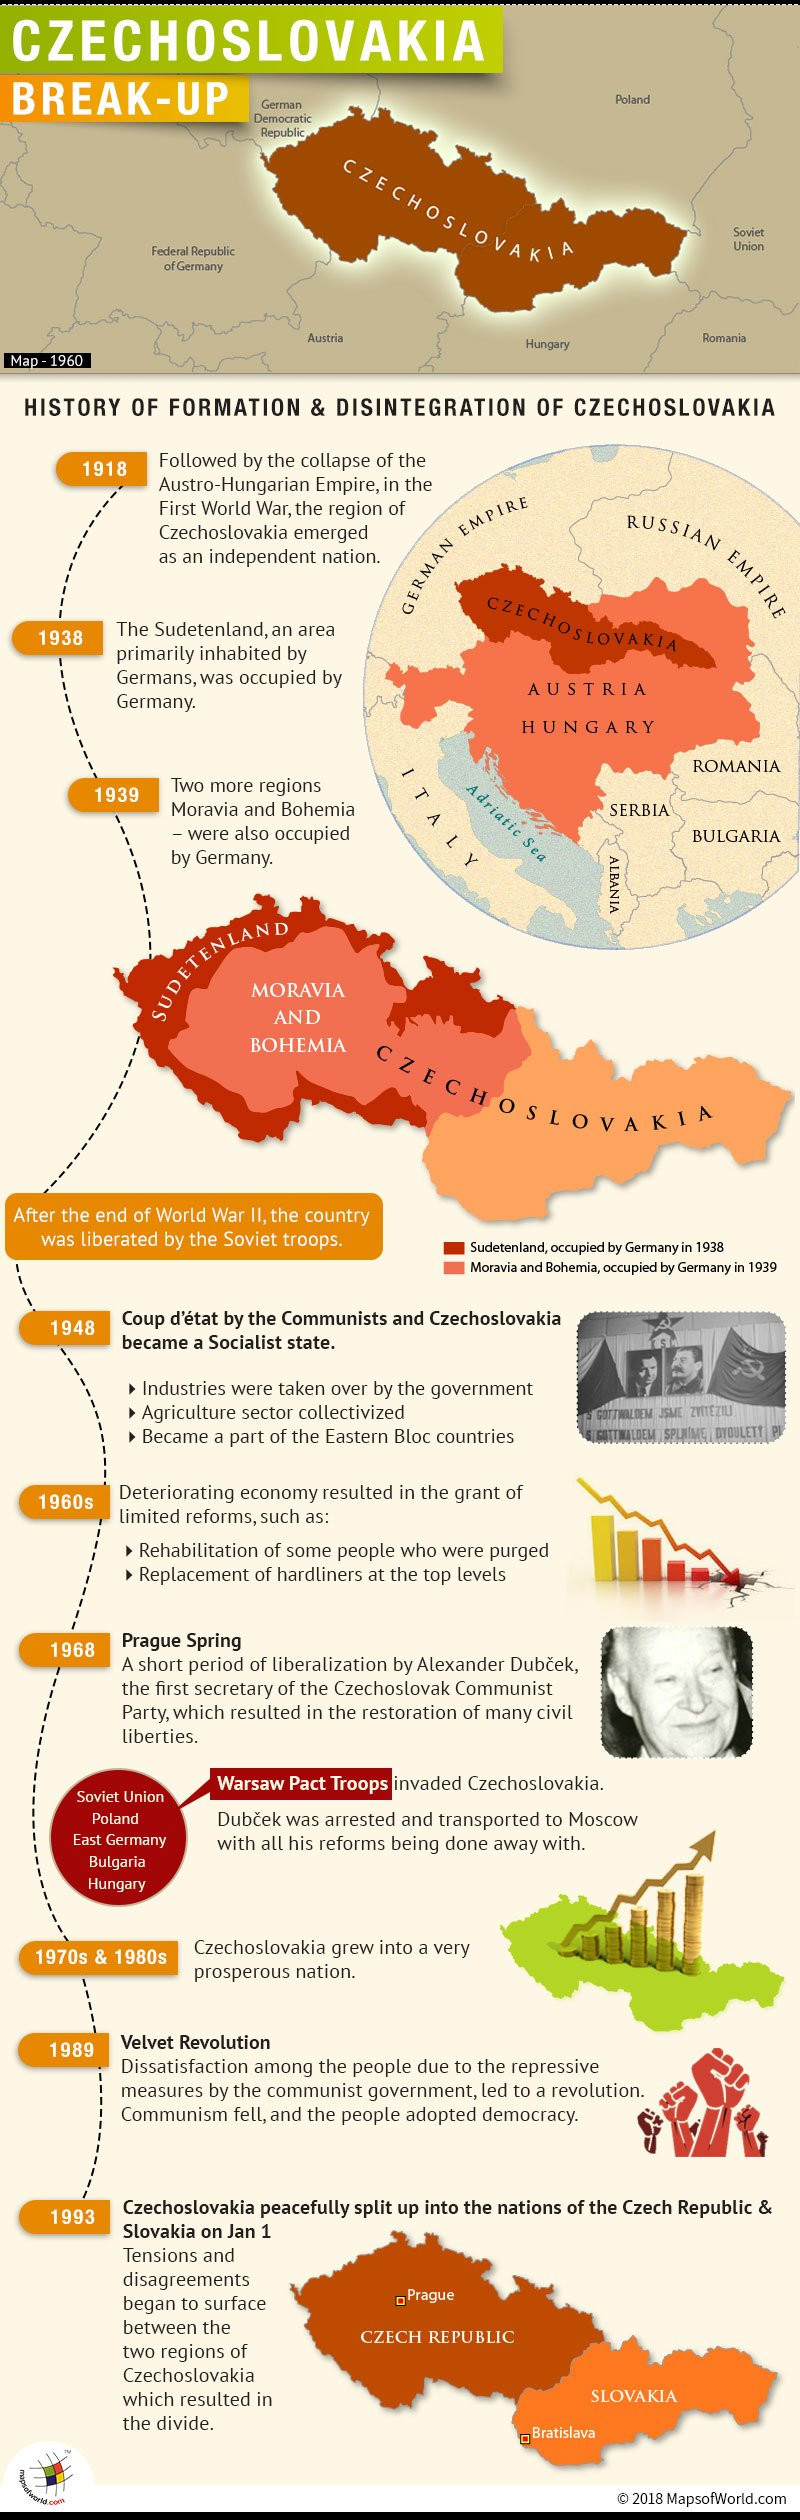 Infographic on Czechoslovakia, its history and disintegration